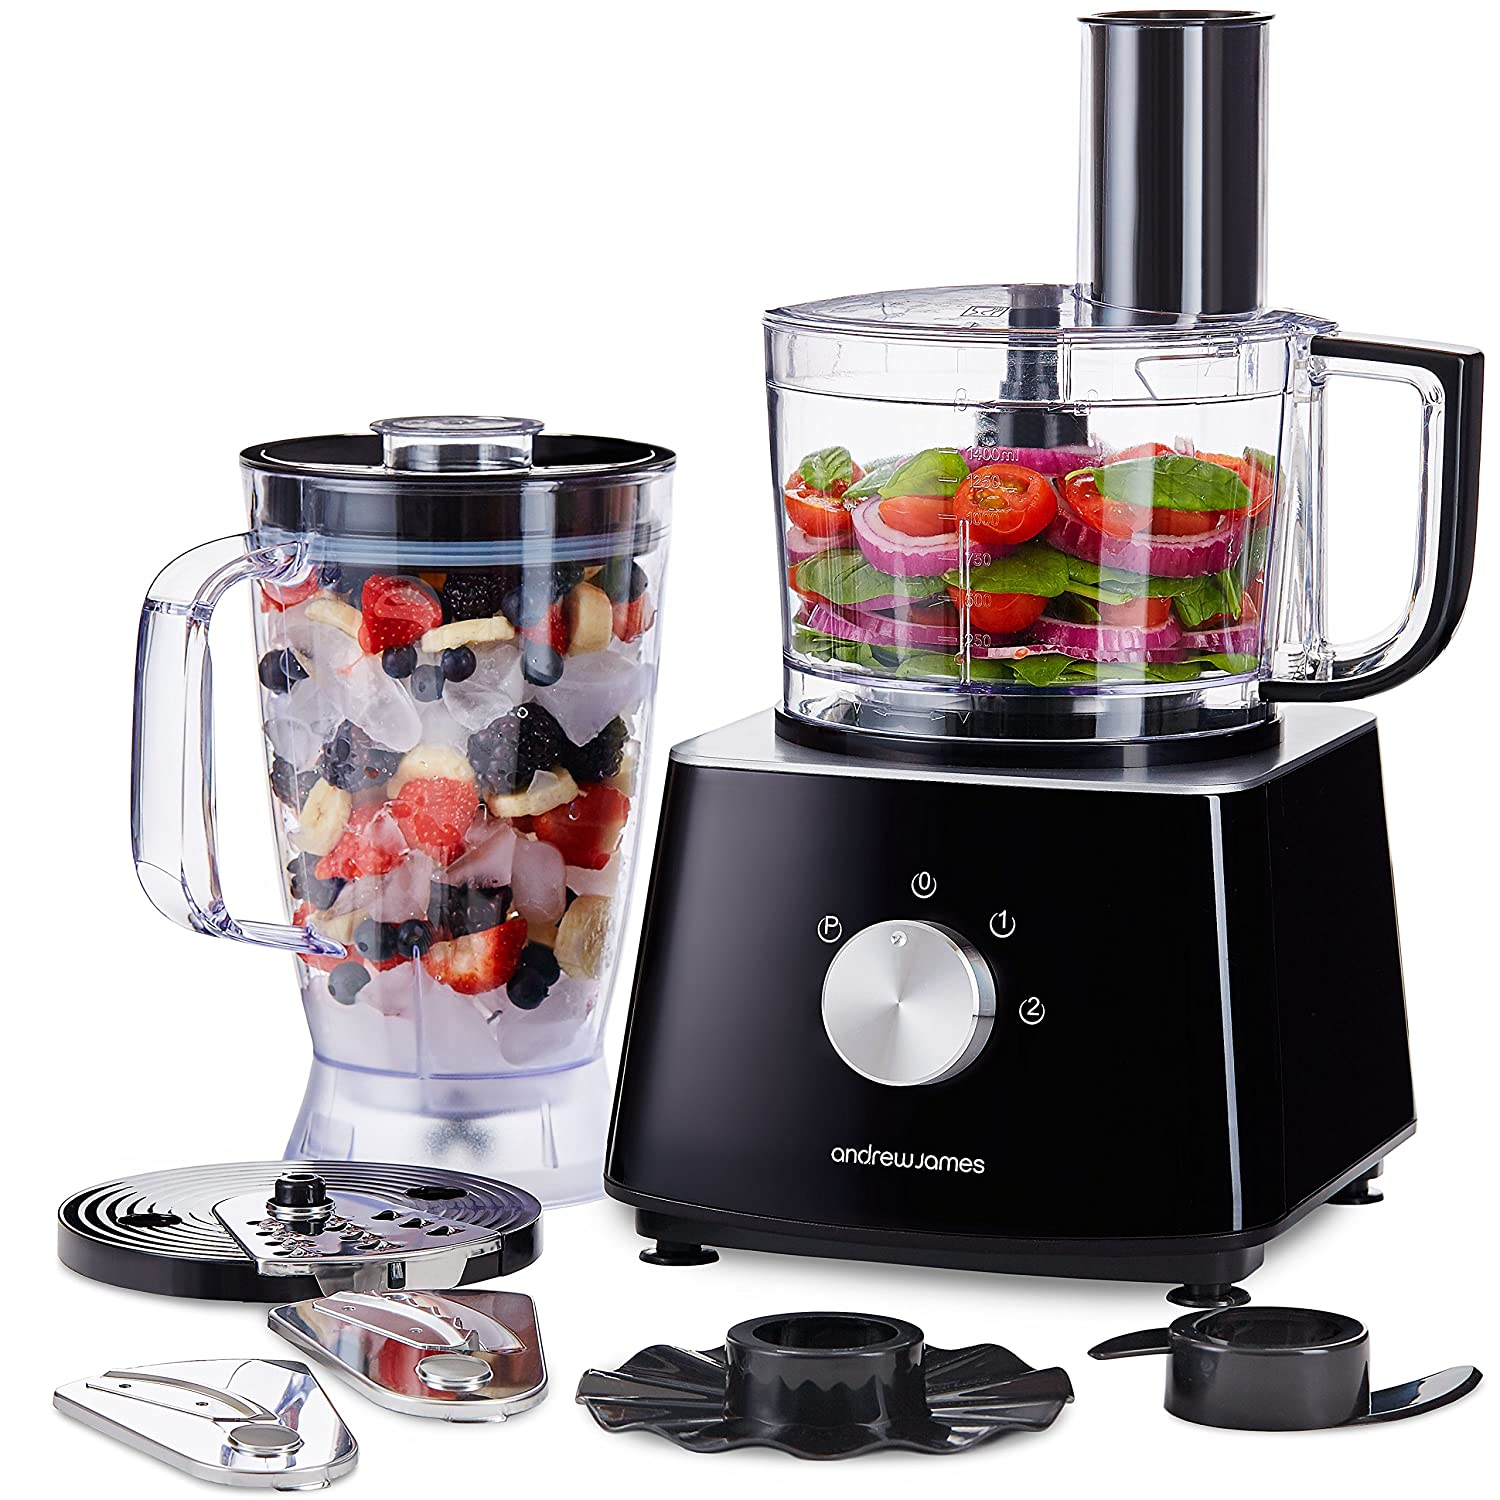 Best Food Processor 2020.Andrew James Food Processor With Blender Jug 6 Chopping Blades Including Grater Kneader Large 1 8l Capacity Electric Chopper For Cooking